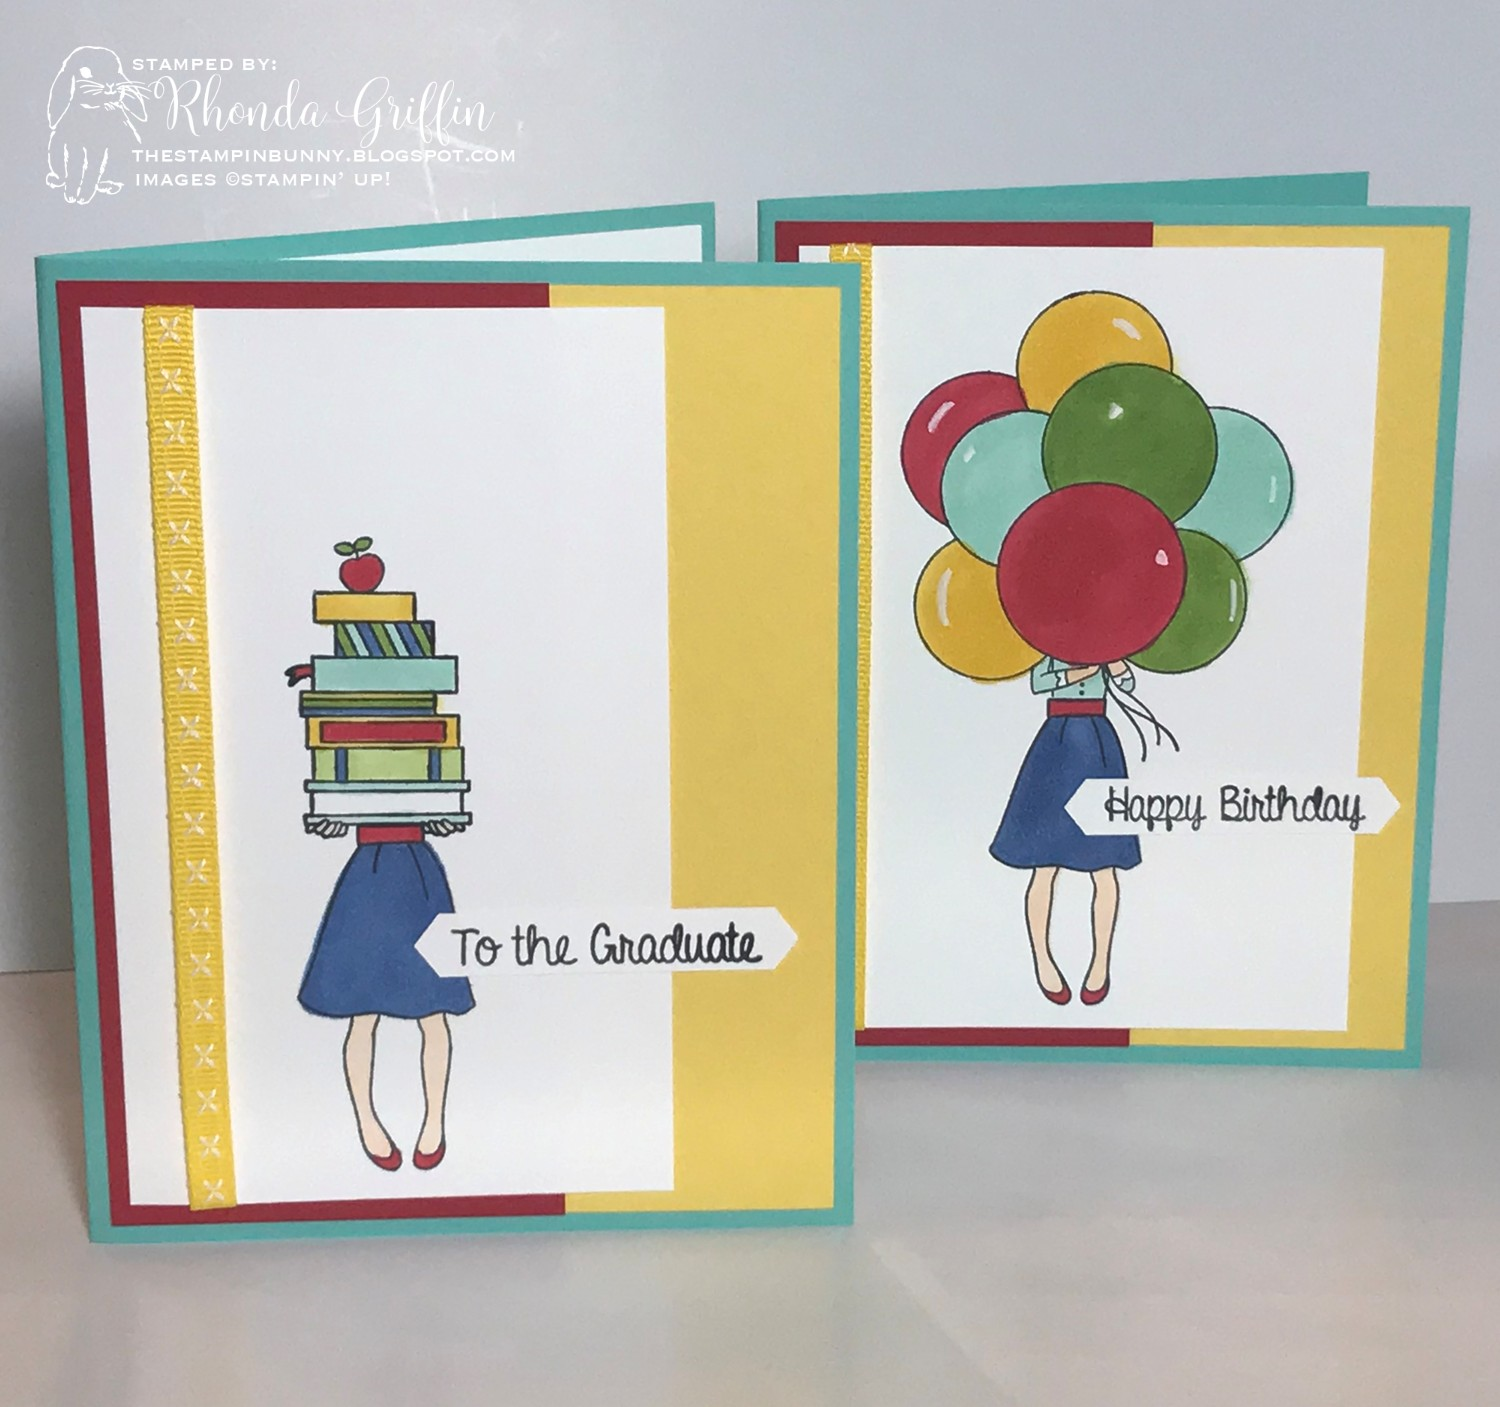 The Cards Are Perfect For Graduation Or Birthdays With Bright Fun Colors Card Would Also Be Wonderful A Teacher Thank You